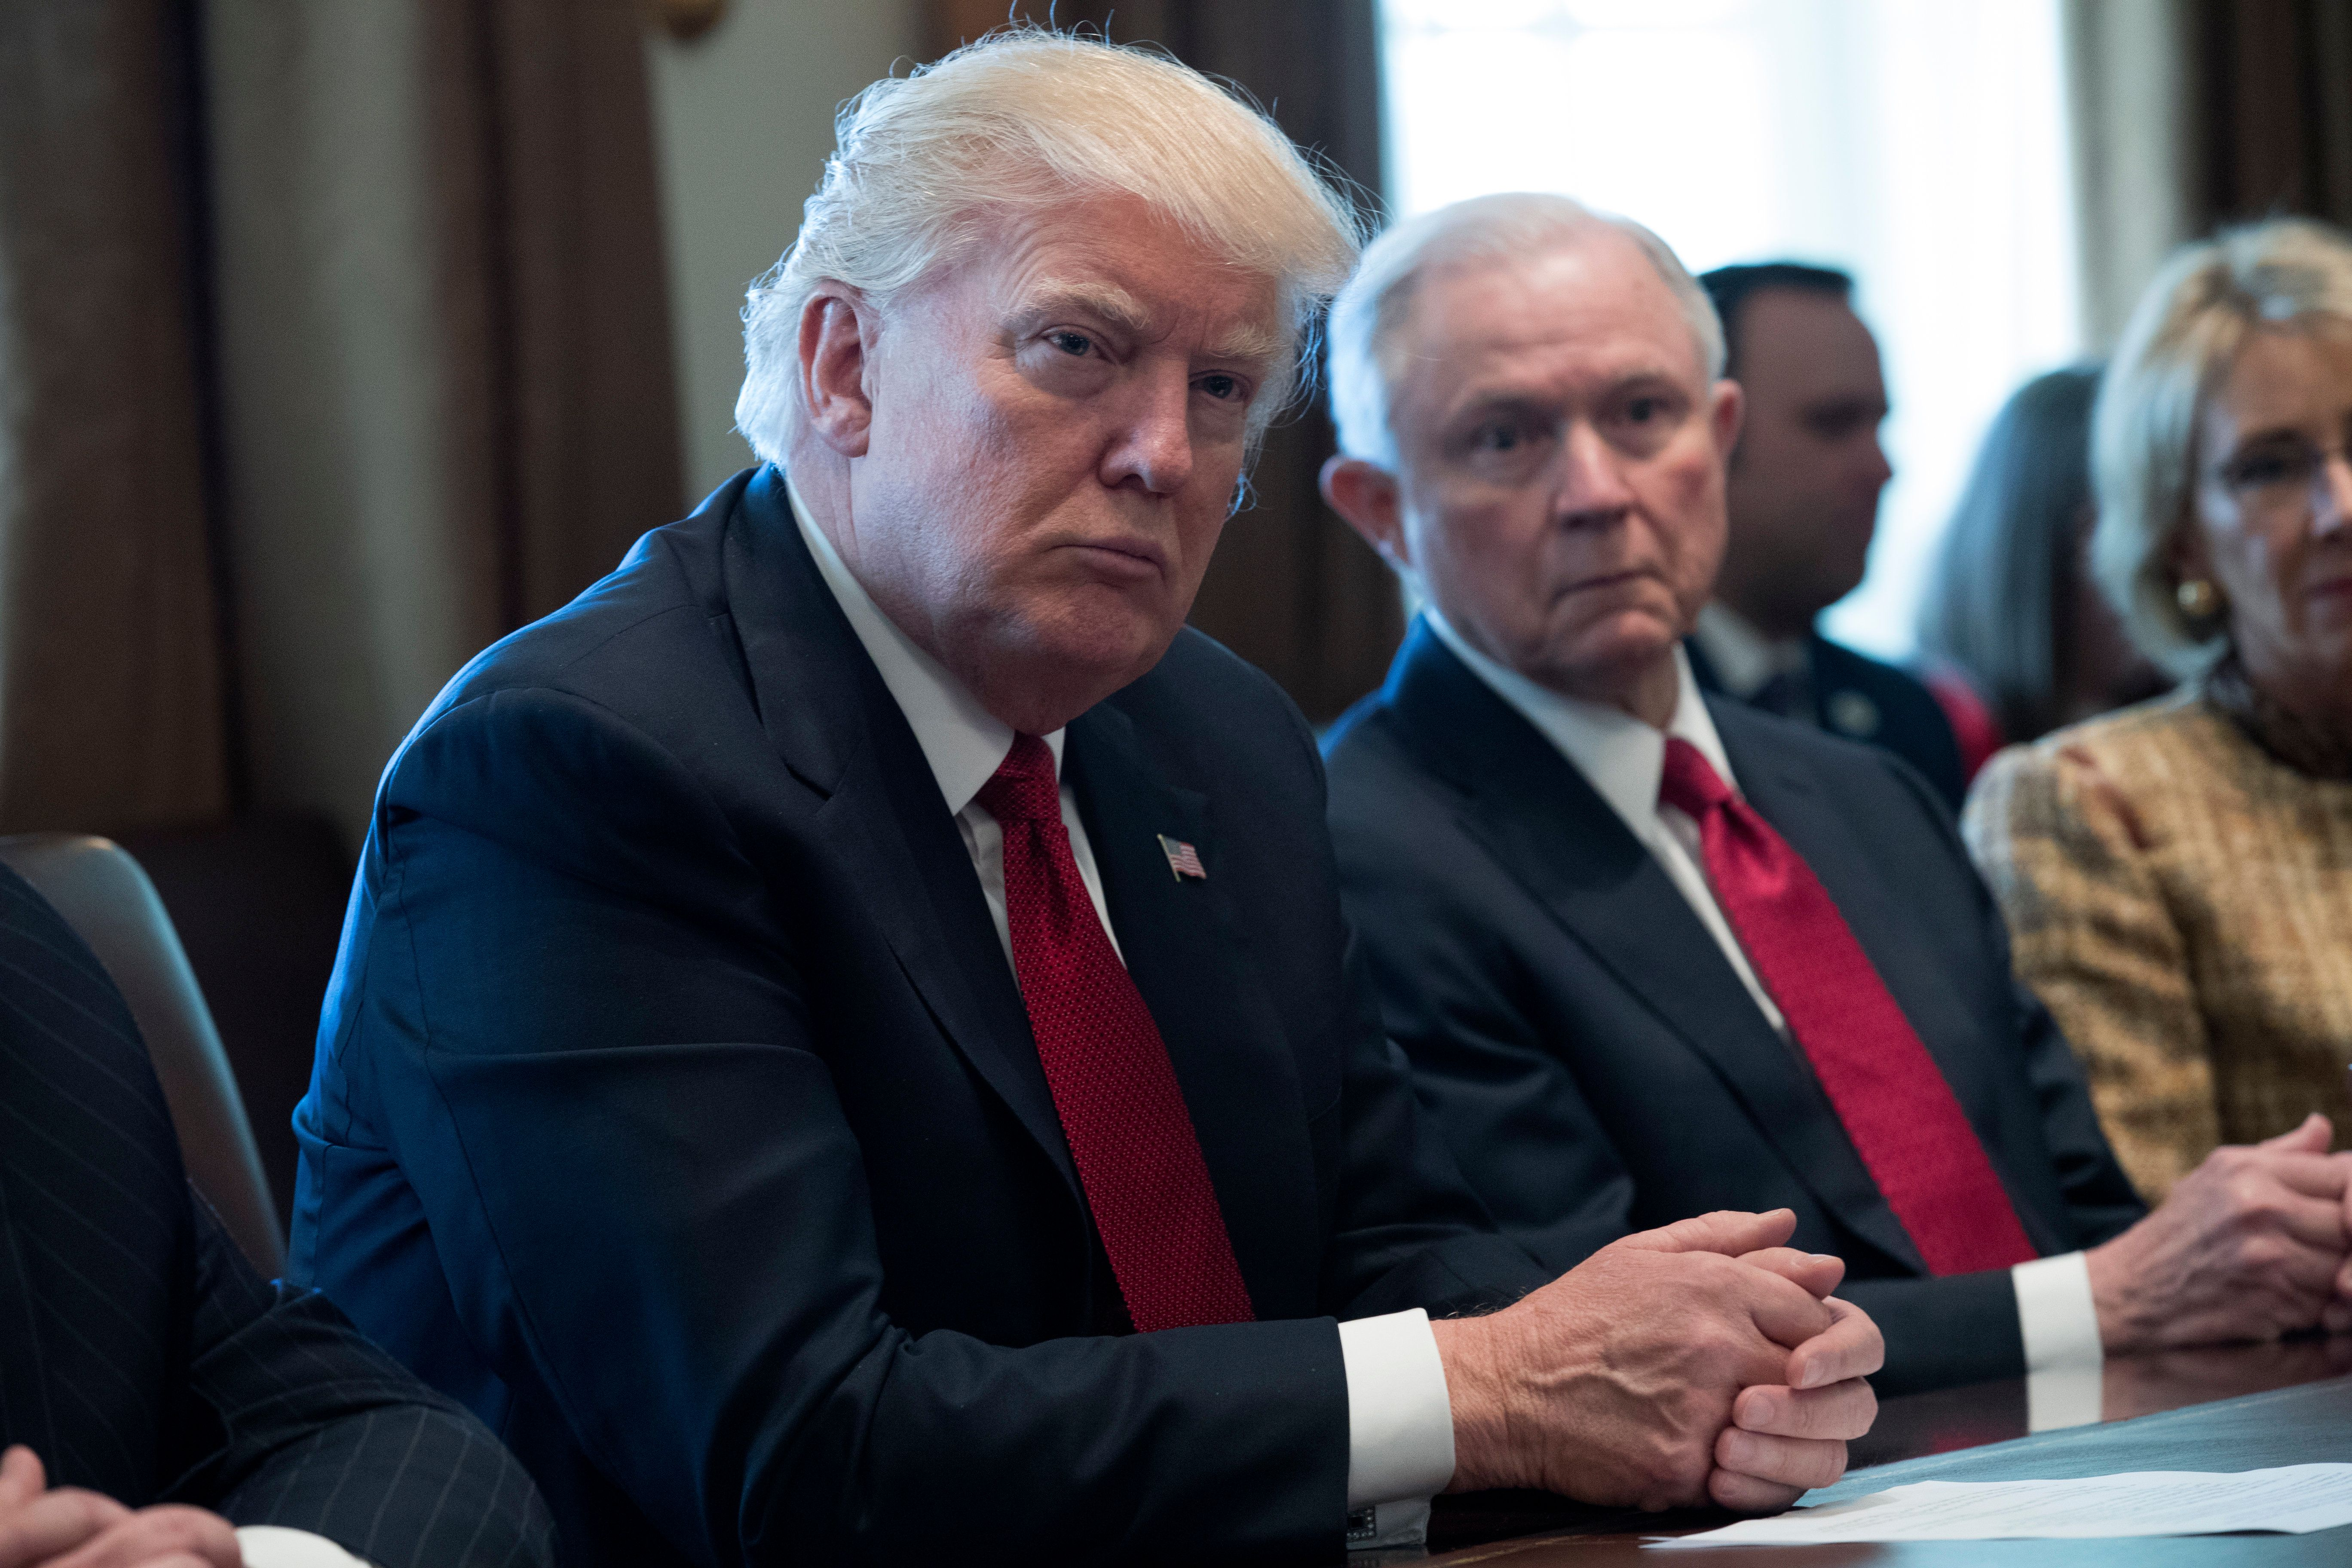 WASHINGTON, DC - MARCH 29:  U.S. President Donald Trump (L) and Attorney General Jeff Sessions (R) attend a panel discussion on an opioid and drug abuse in the Roosevelt Room of the White House March 29, 2017 in Washington, DC.  (Photo by Shawn Thew-Pool/Getty Images)